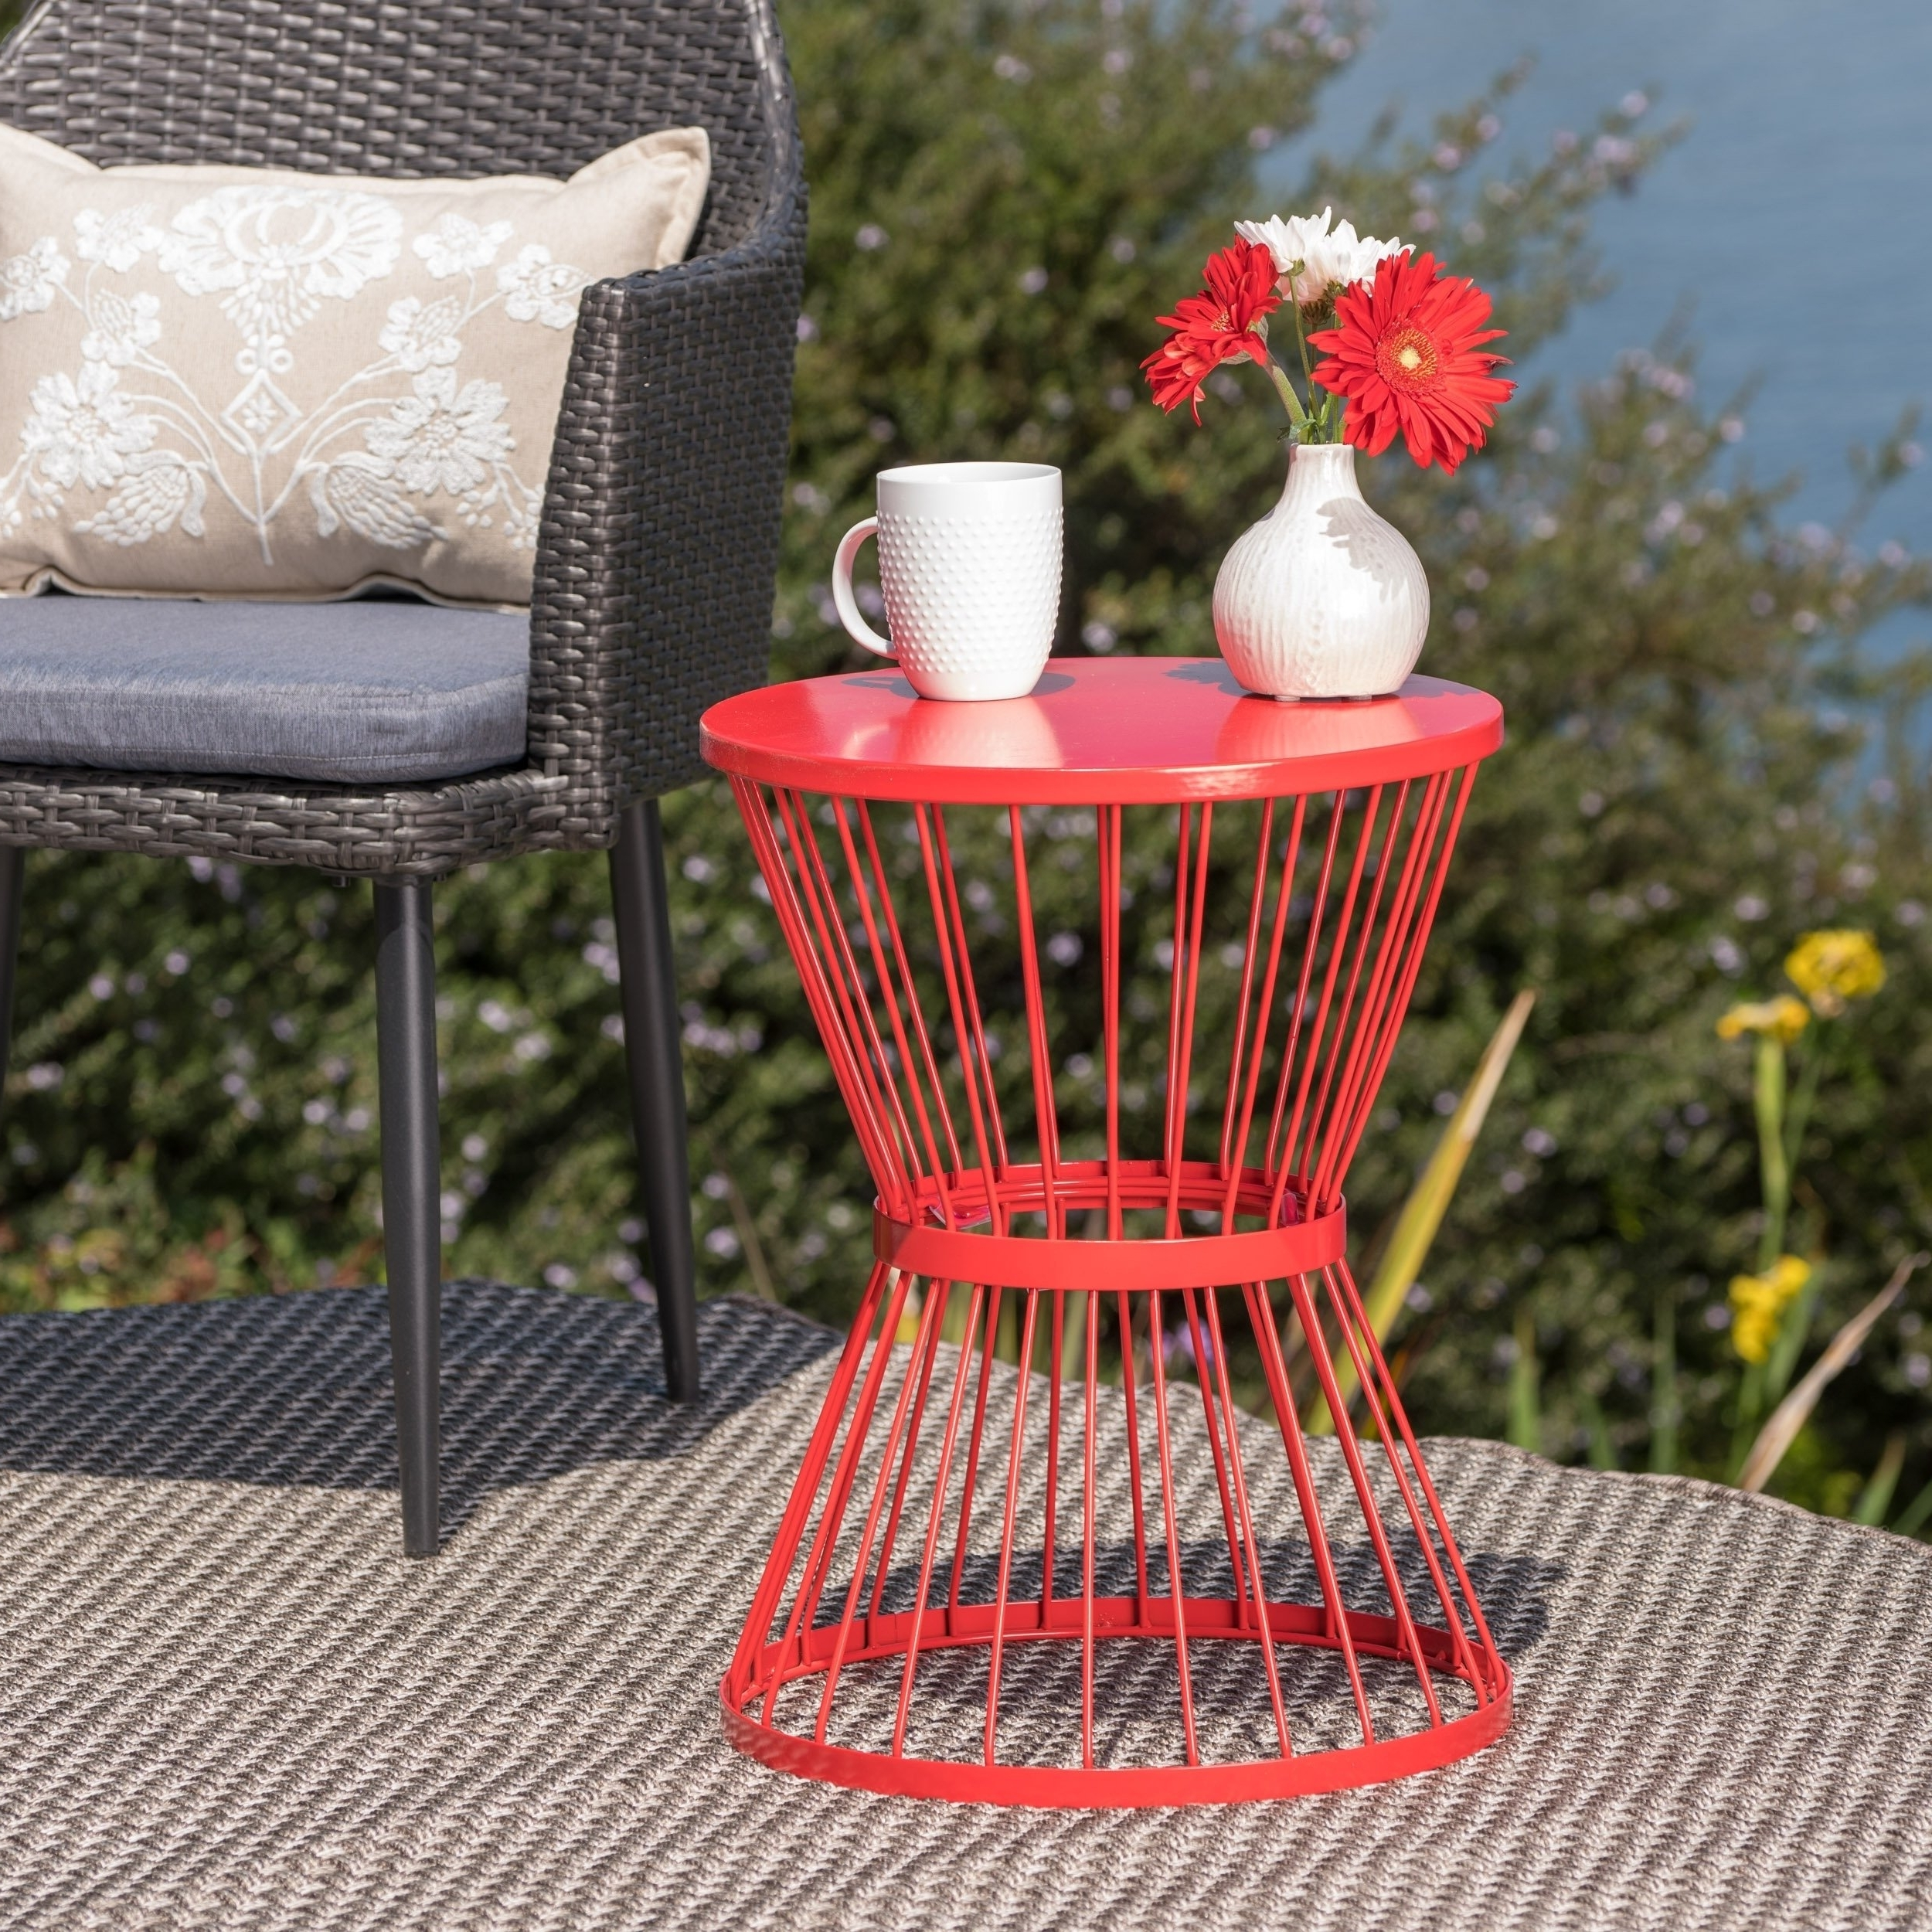 Popular Shop Lassen Outdoor 16 Inch Round Side Tablechristopher Knight Intended For Lassen 5 Piece Round Dining Sets (View 17 of 25)